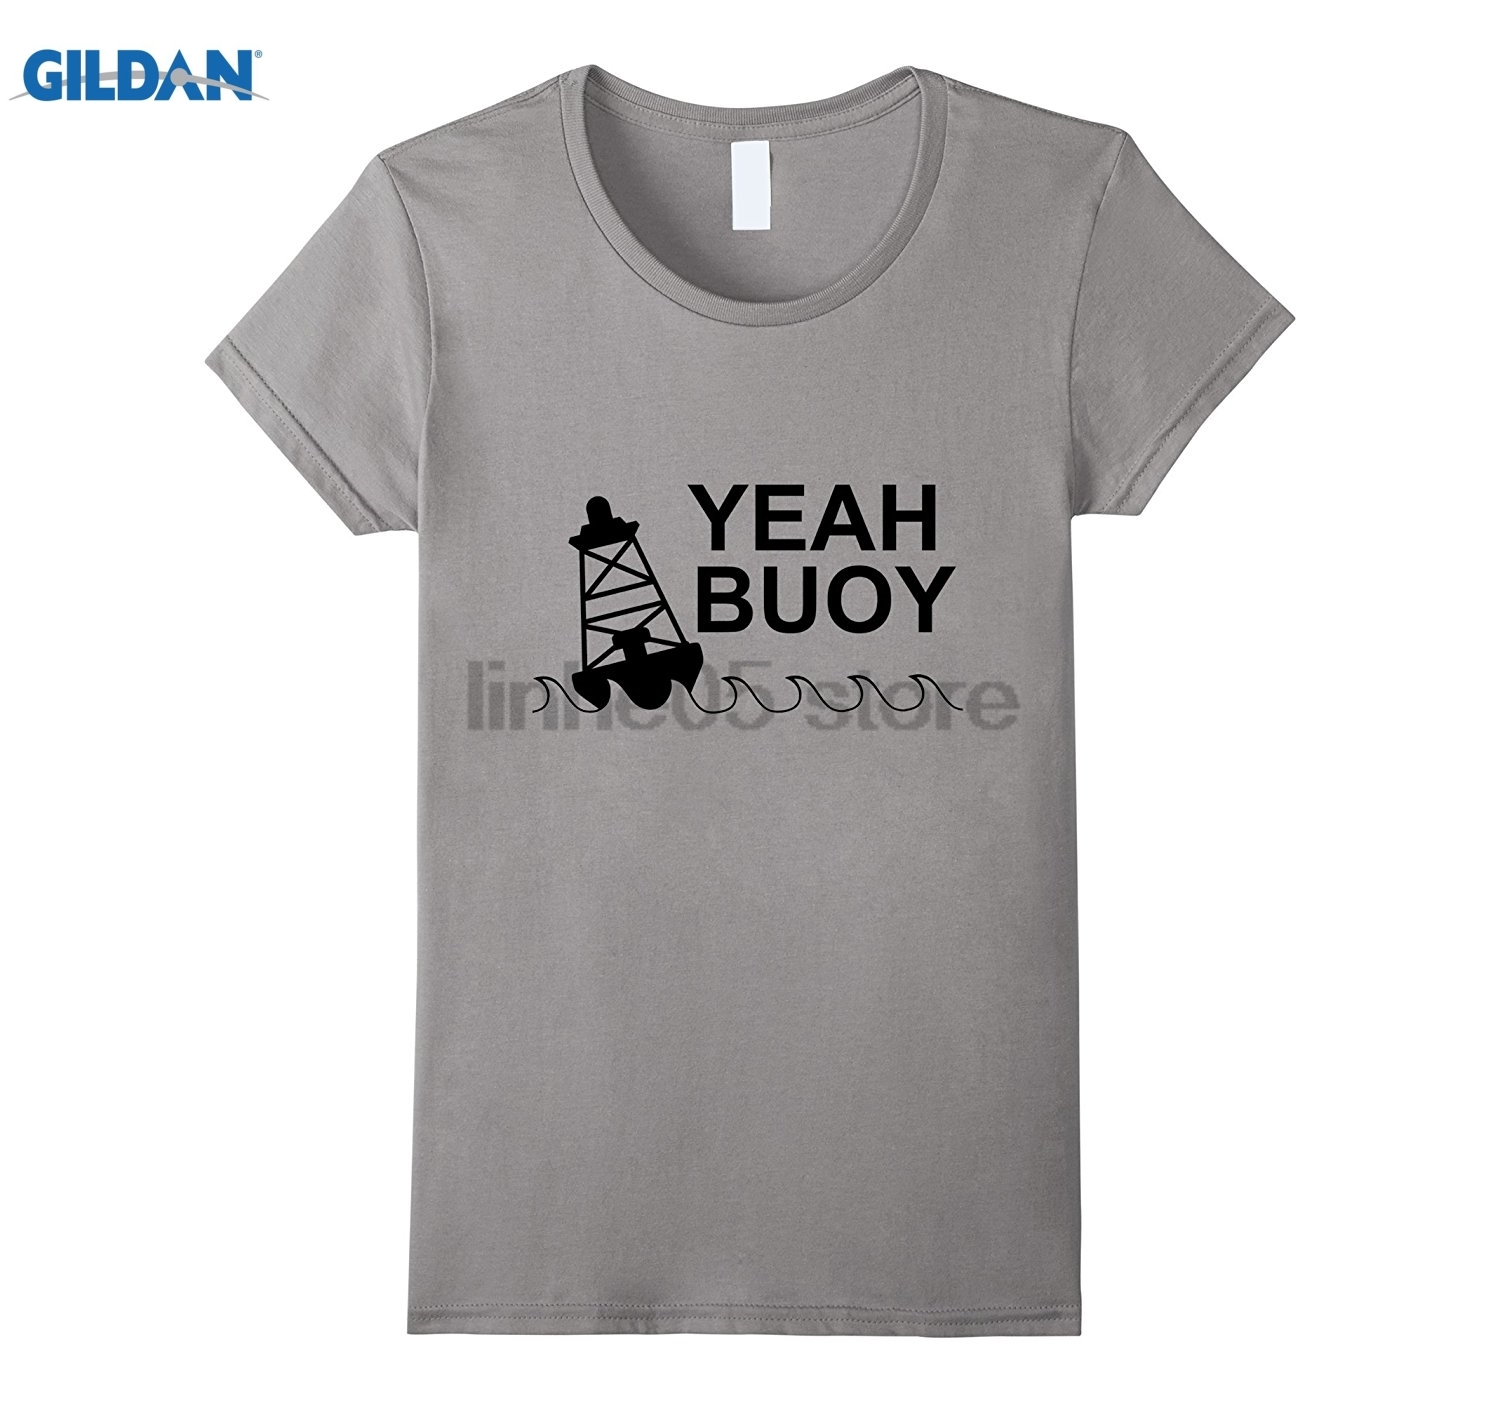 GILDAN Yeah Buoy t-shirt Dress female T-shirt